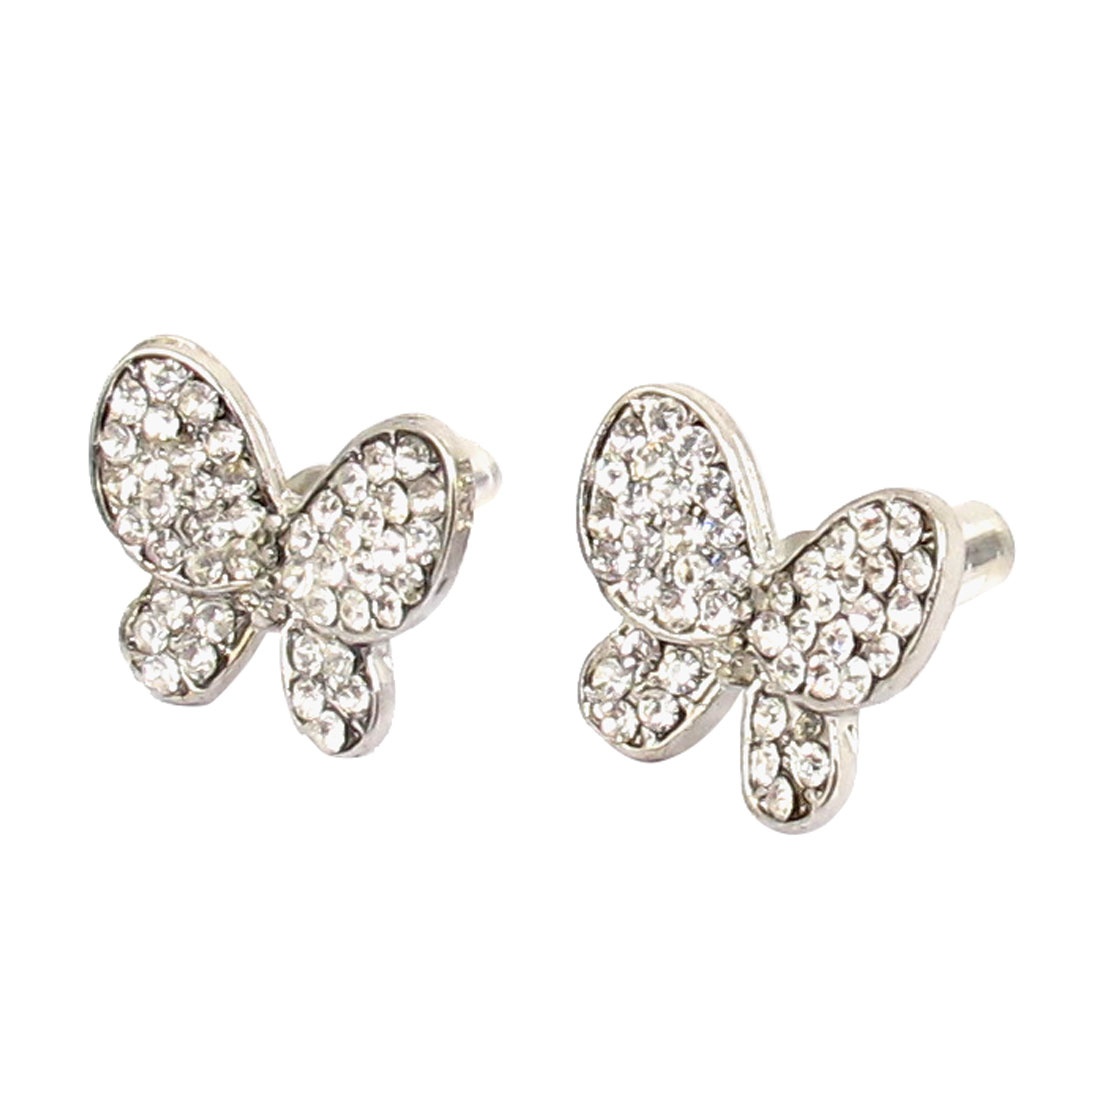 Women Plastic Crystal Decor Metal Butterfly Shape Stud Earrings Silver Tone Pair